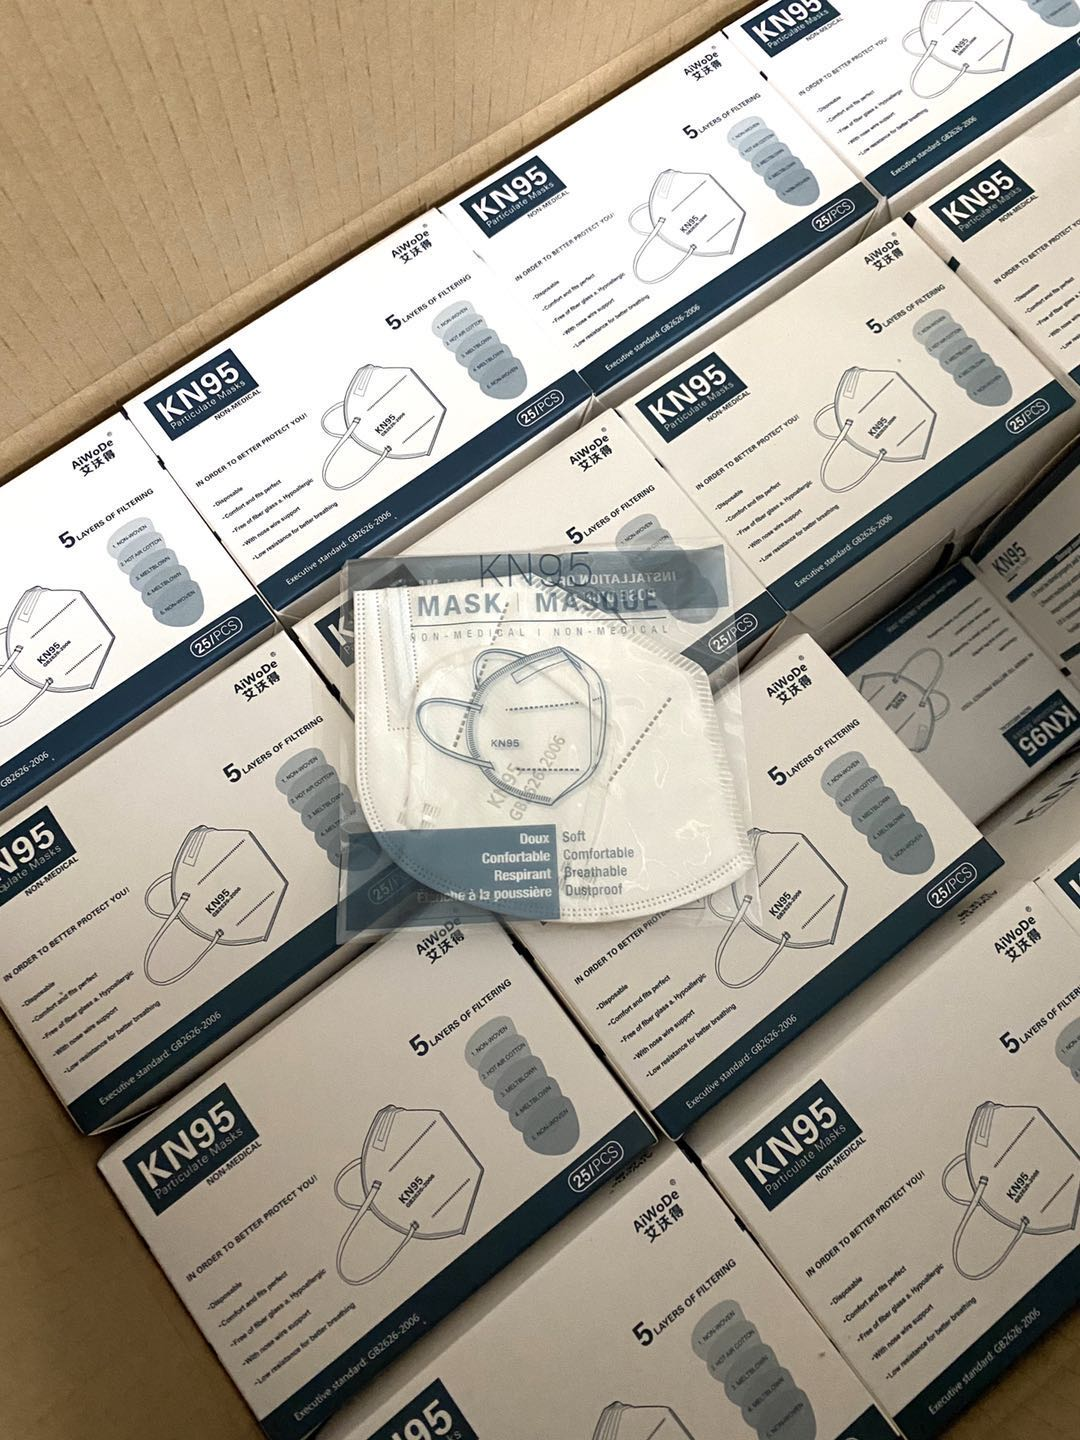 kn95 protective face mask one carton package